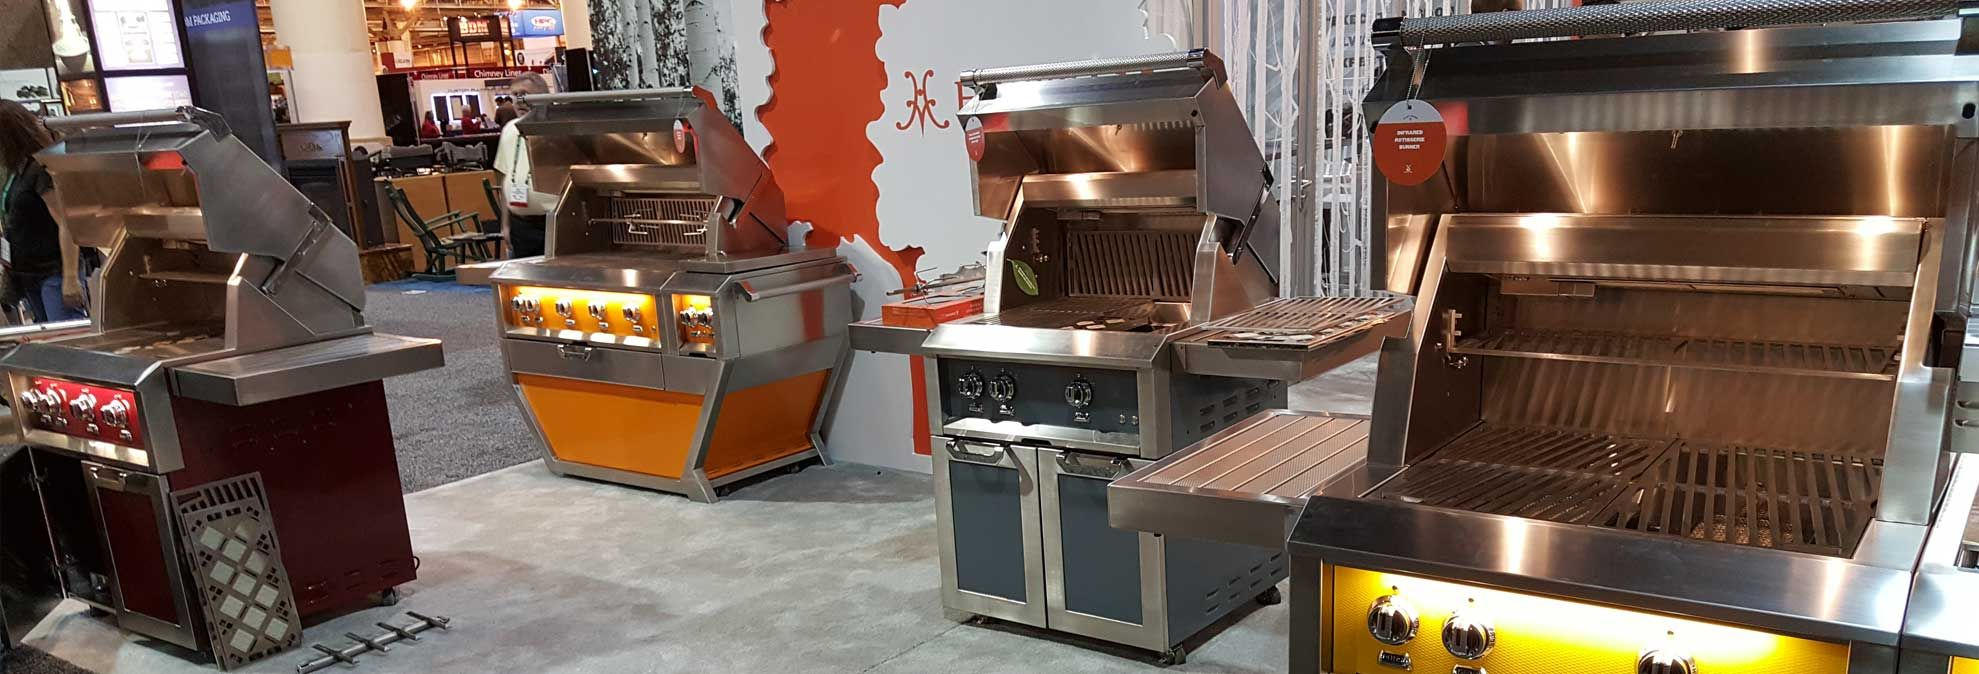 Outdoor Kitchens And Fancy Grills Heat Up The Market Outdoor Kitchen Build Outdoor Kitchen Outdoor Cooking